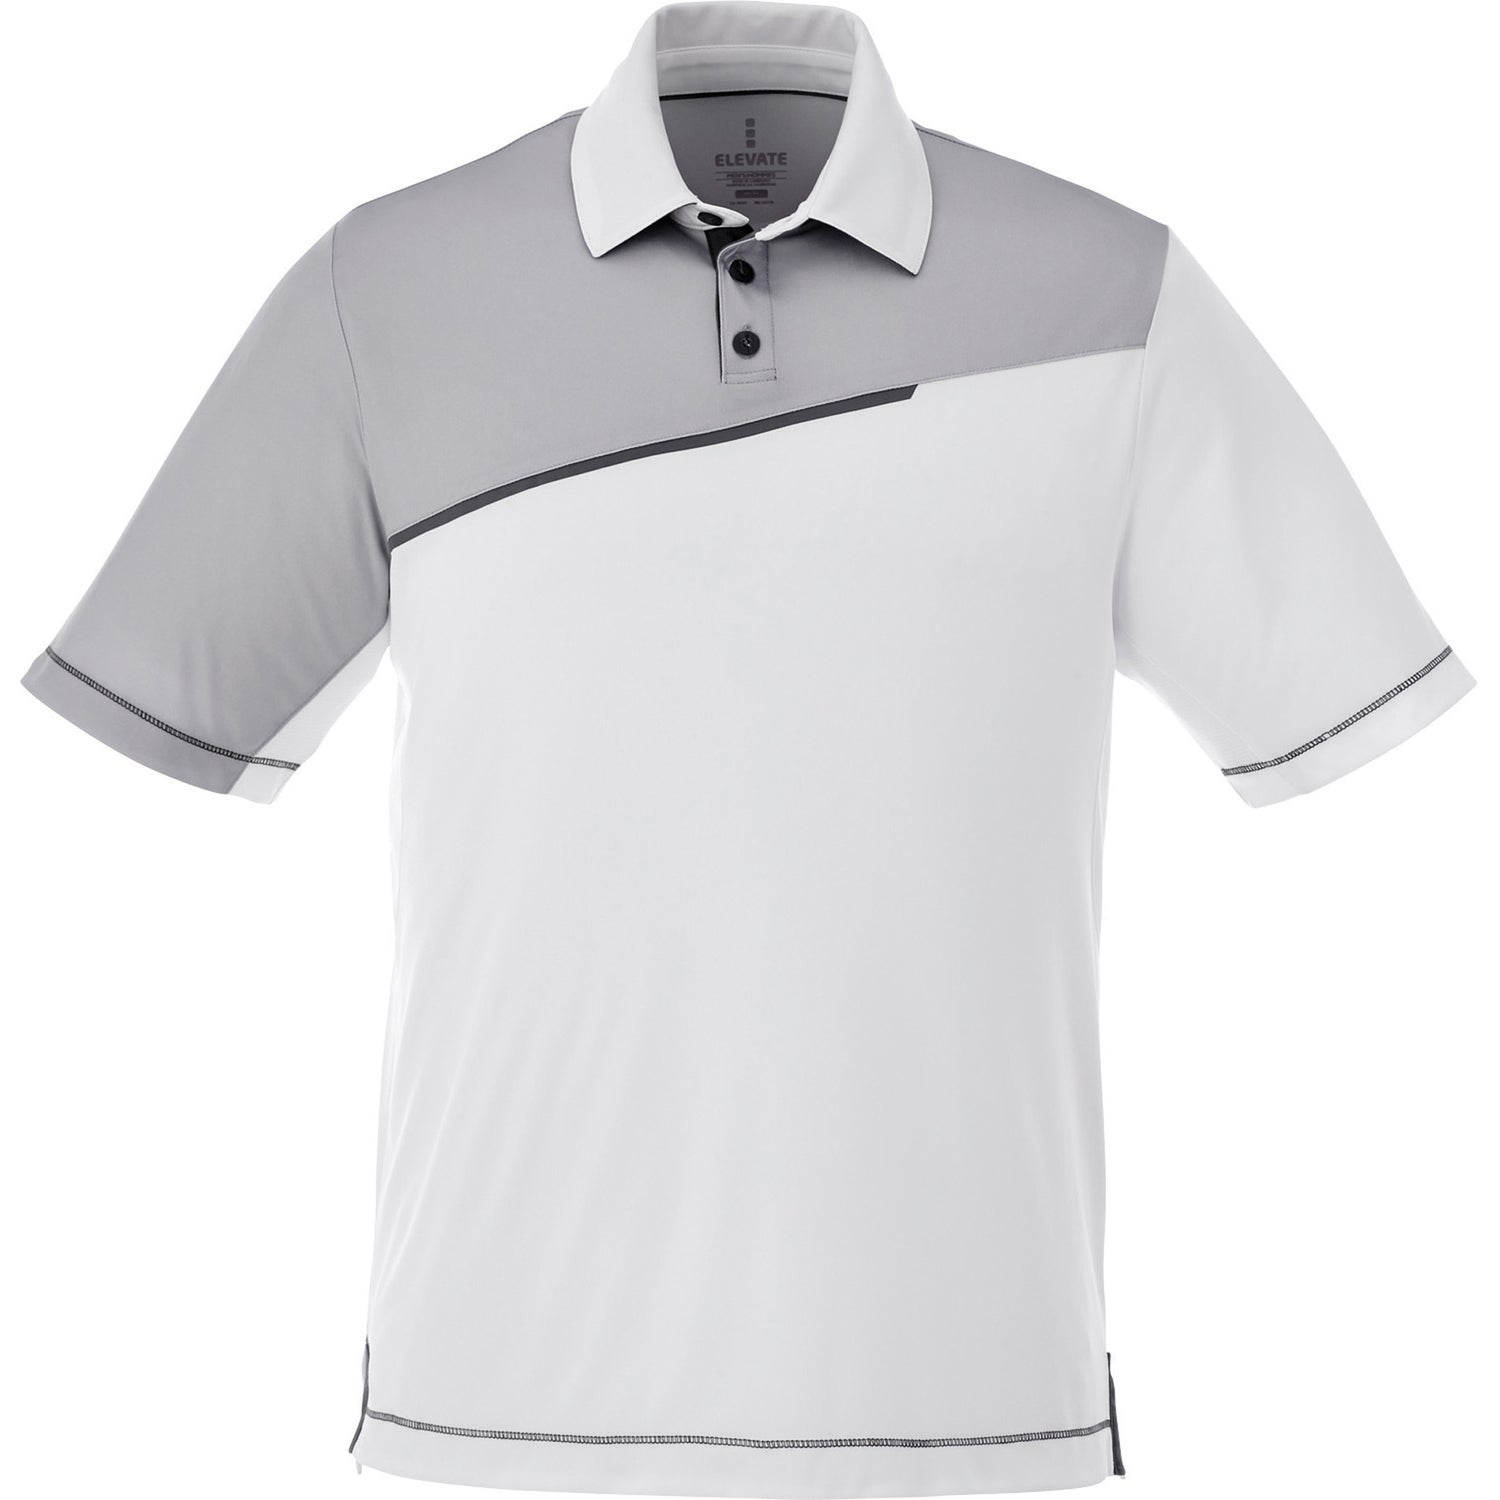 Prater Short Sleeve Polo Shirt by TRIMARK (Men's)